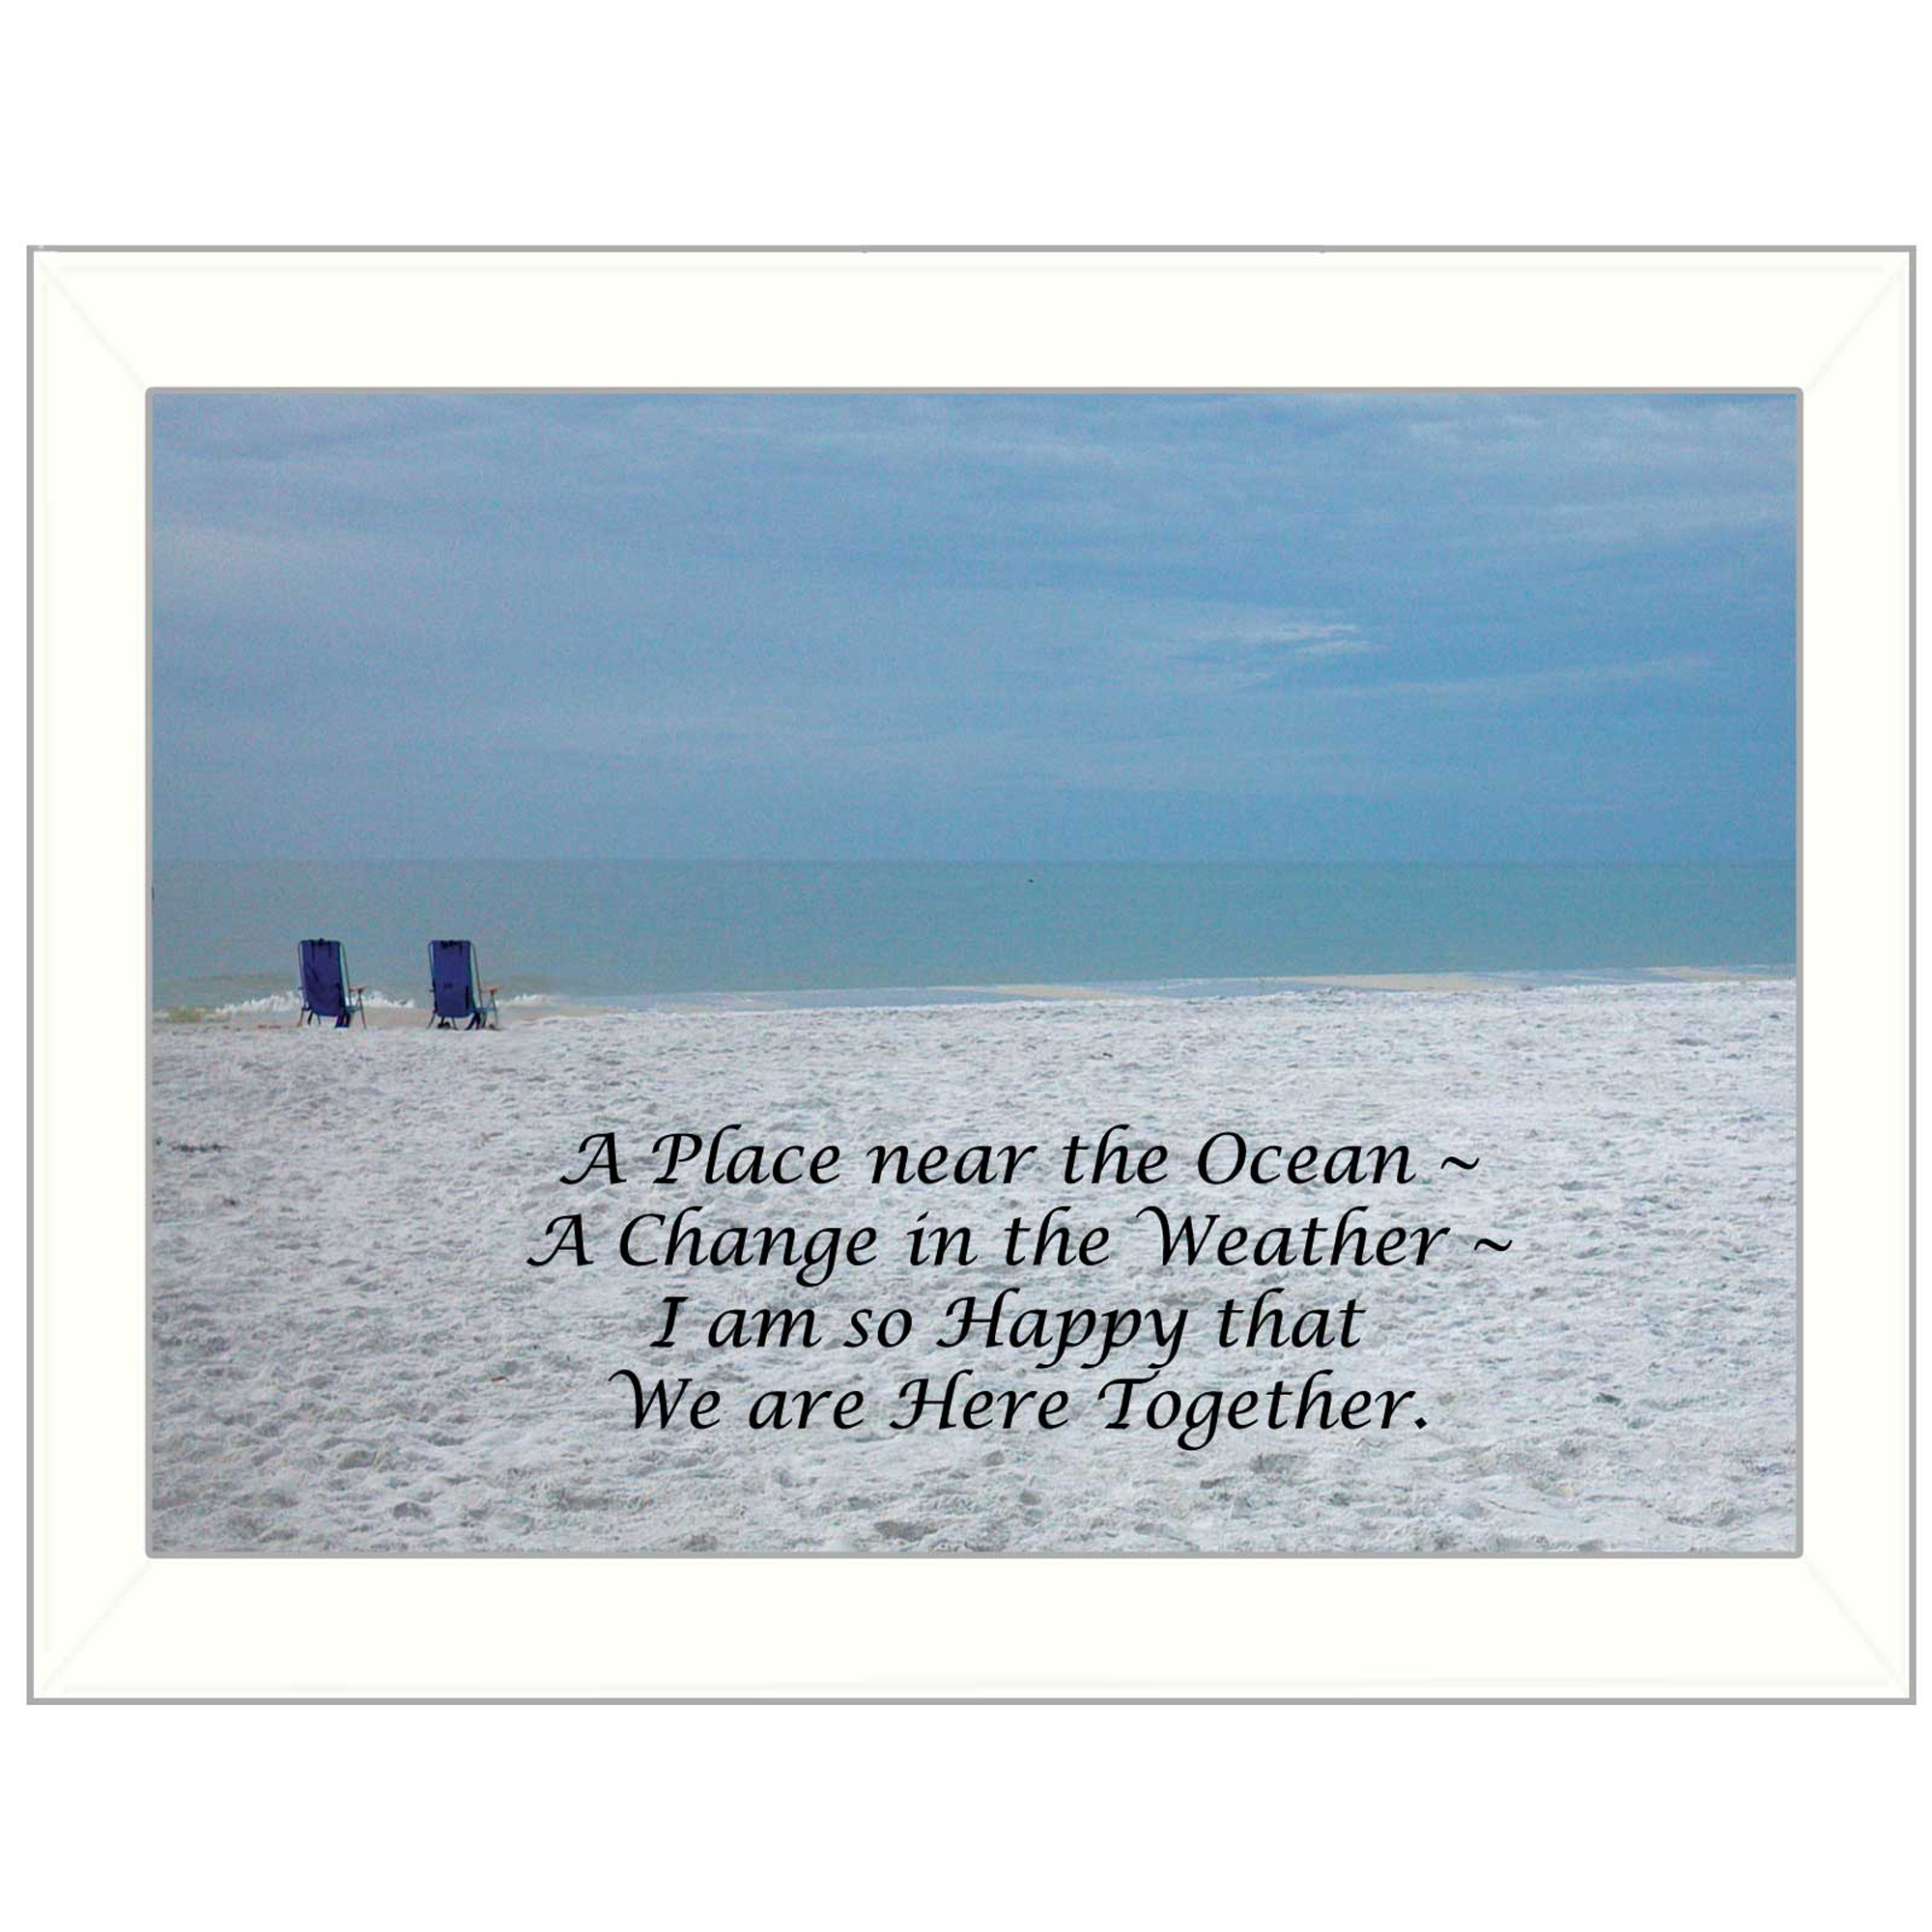 "Me36-712W ""A Place near the Ocean"" is a 10"" x 14"" white framed print. This artwork features a beach scene with a poem about being near the ocean. This totally American Made wall decor item features an attractive frame, a textured canvas like finish so no glass is necessary and is ready to hang. * Made in the USA * Women Owned (Wbe) * Textured Artwork with a 'rolled on' acid free acrylic coating to create a canvas painting effect. No glass is necessary. * UV protectant coating protects artwork from fading. * MDF moulding adds natural beauty to the framed art. Frame is keyholed for ease of hanging."